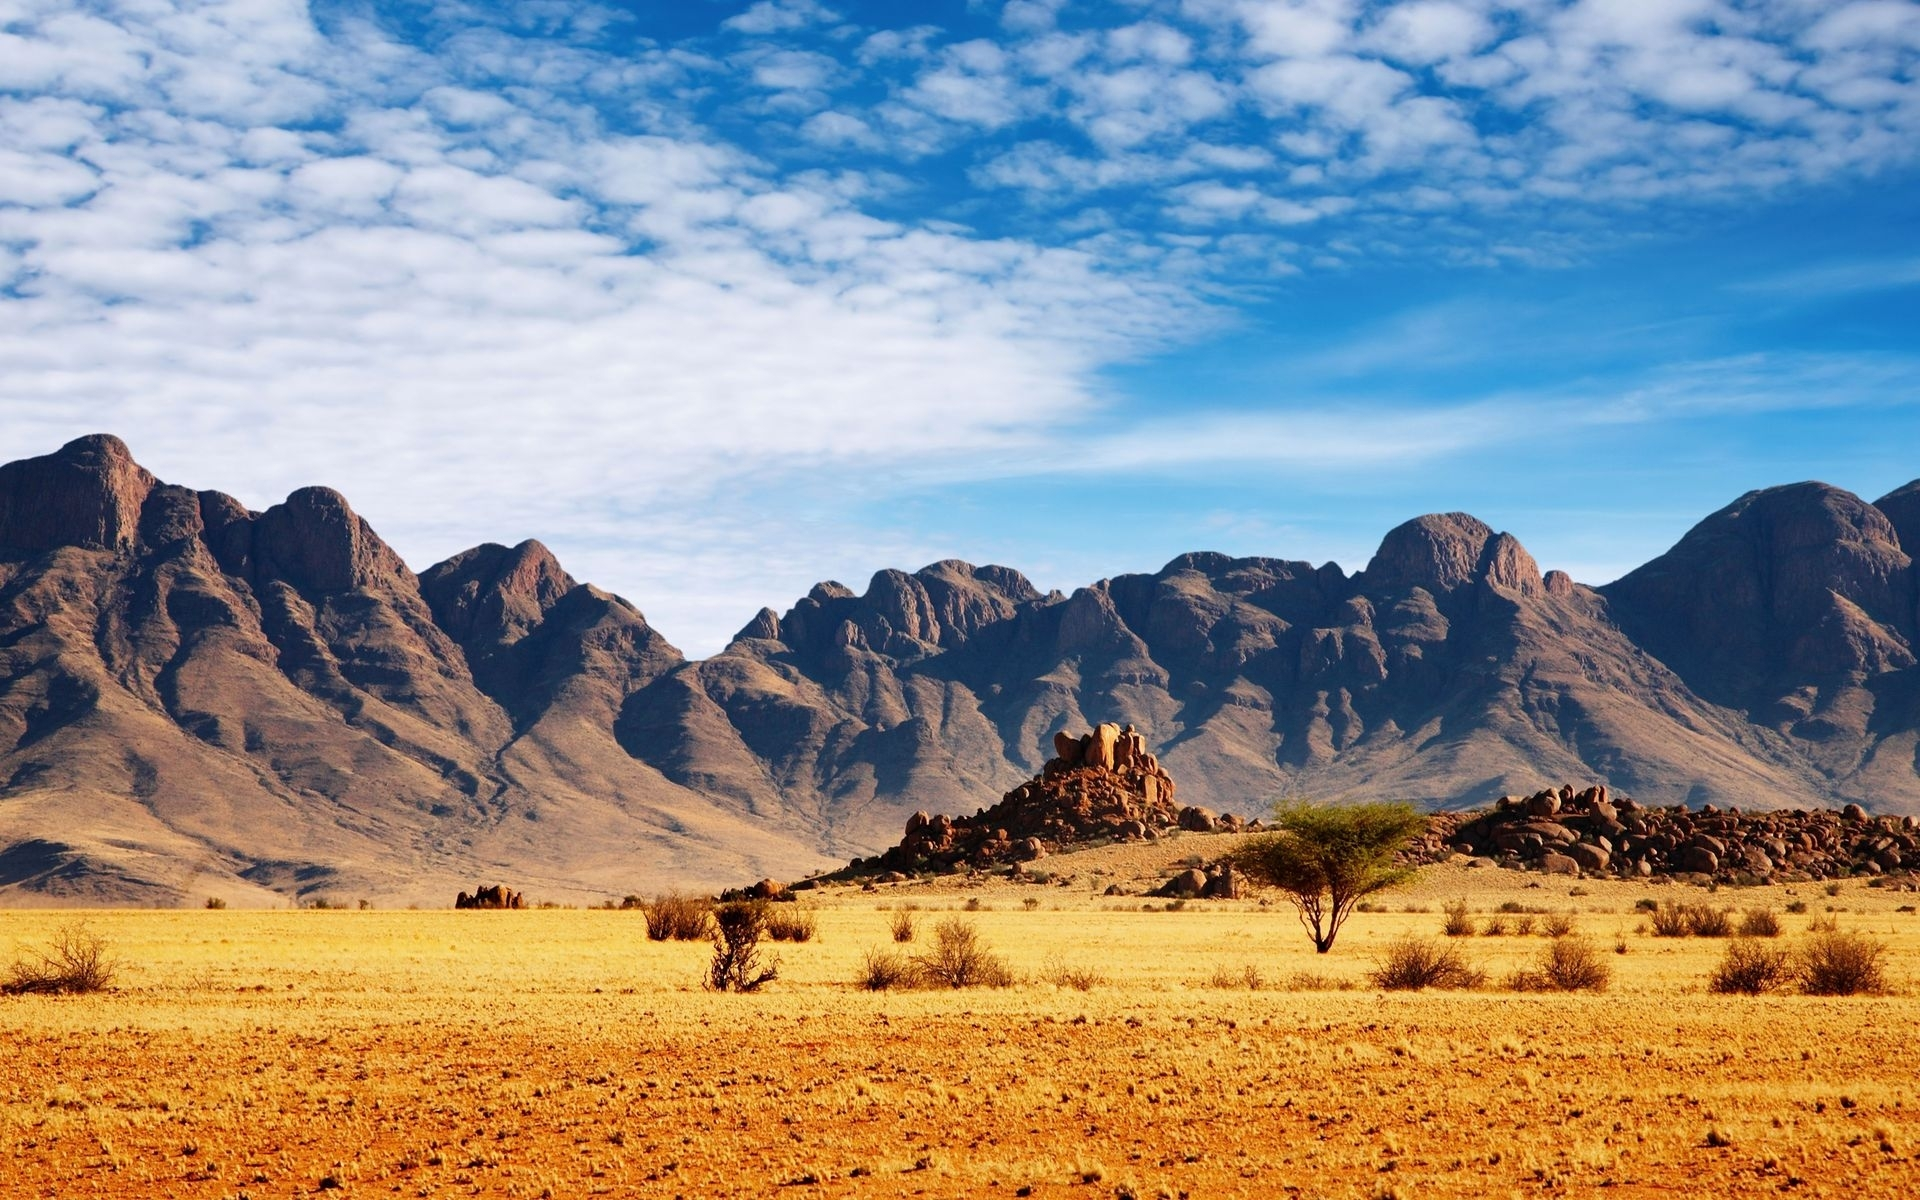 27197 download wallpaper Landscape, Sky, Mountains, Desert screensavers and pictures for free